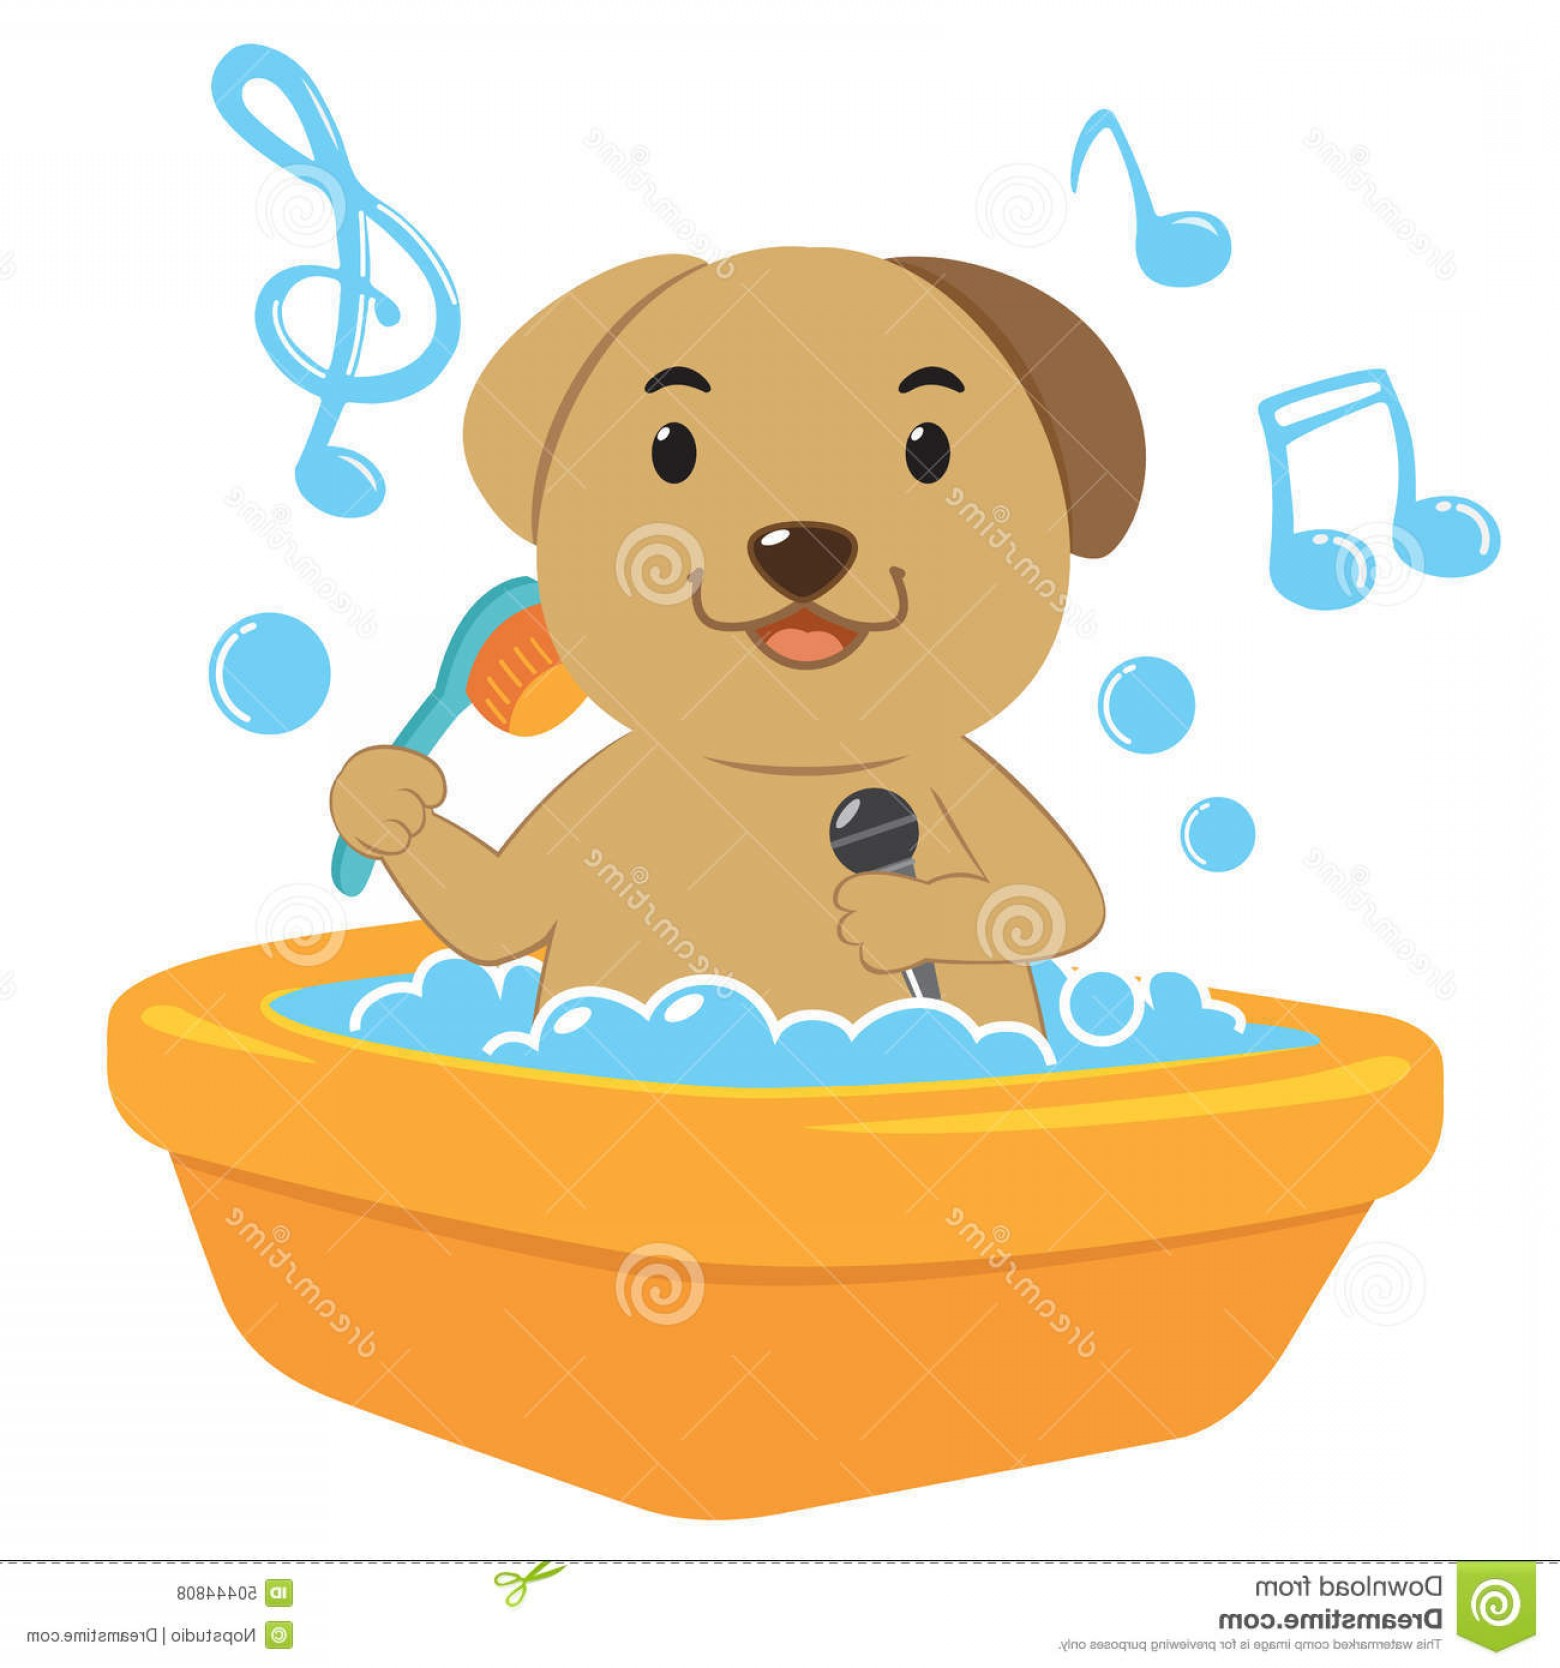 Dog Bubble Bath Vector: Special Stock Illustration Dog Bath Cartoon Happy Sing Song Bathtub Image